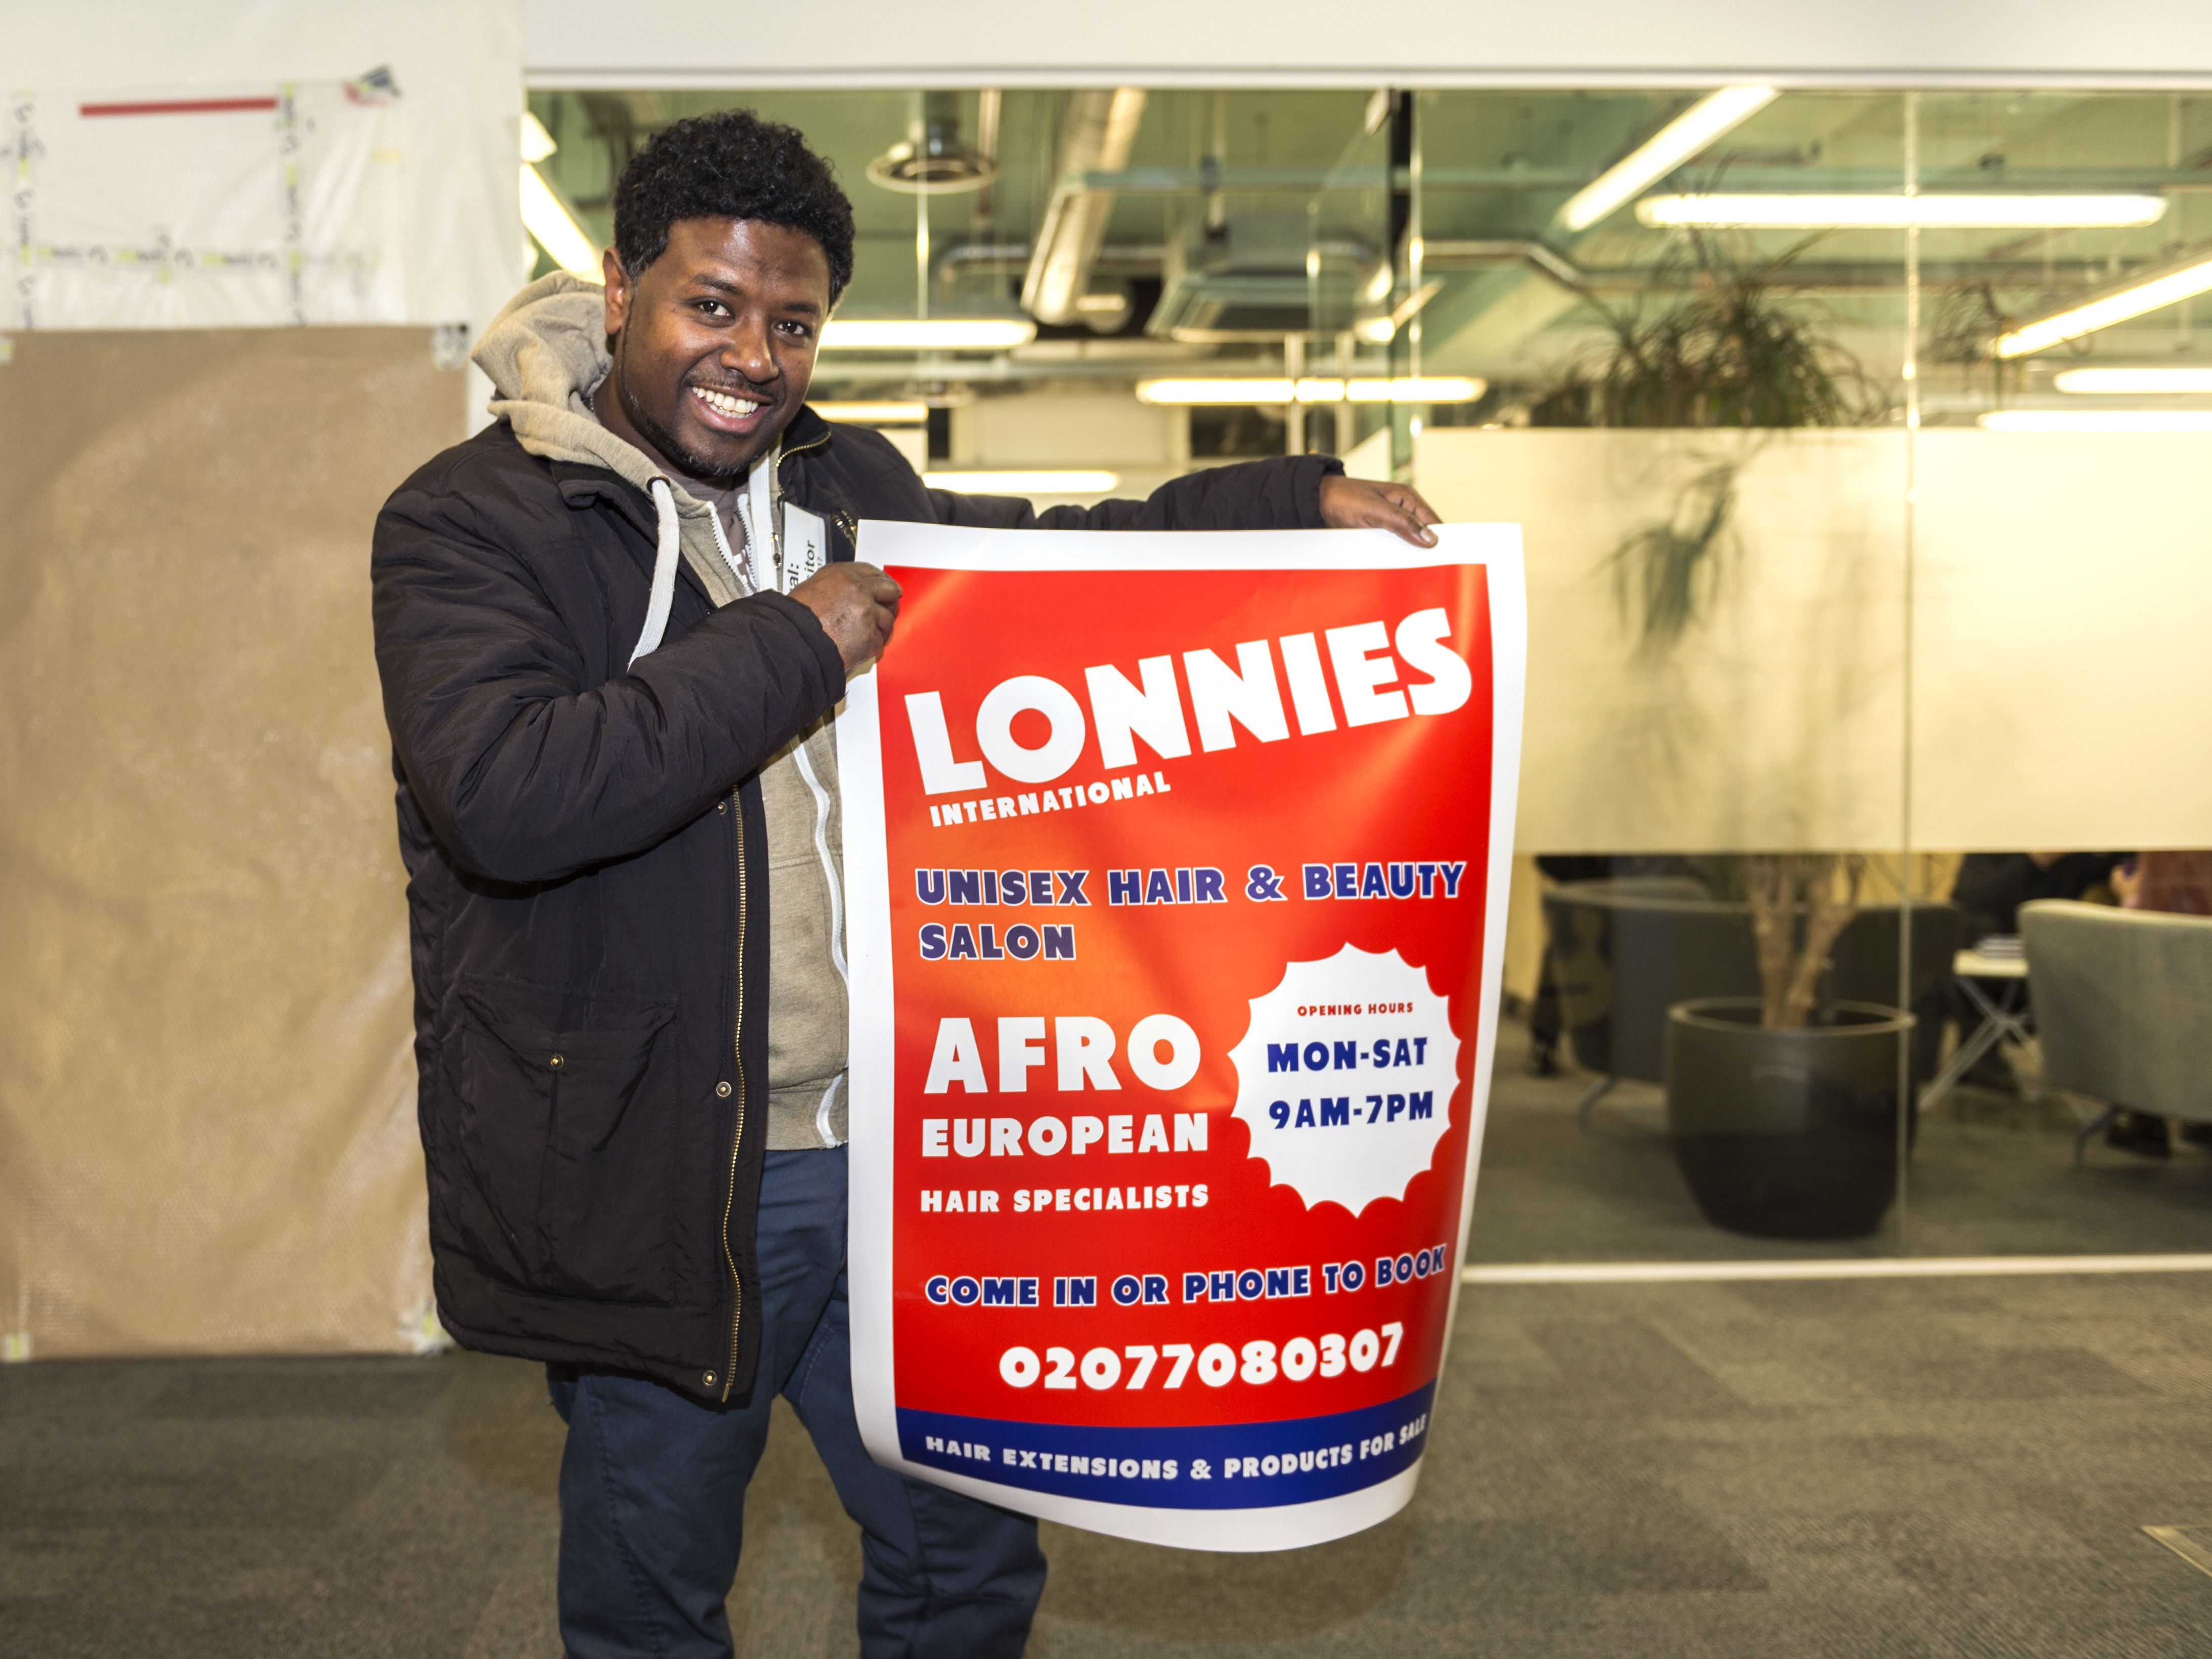 Photograph of a man holding a shop poster.